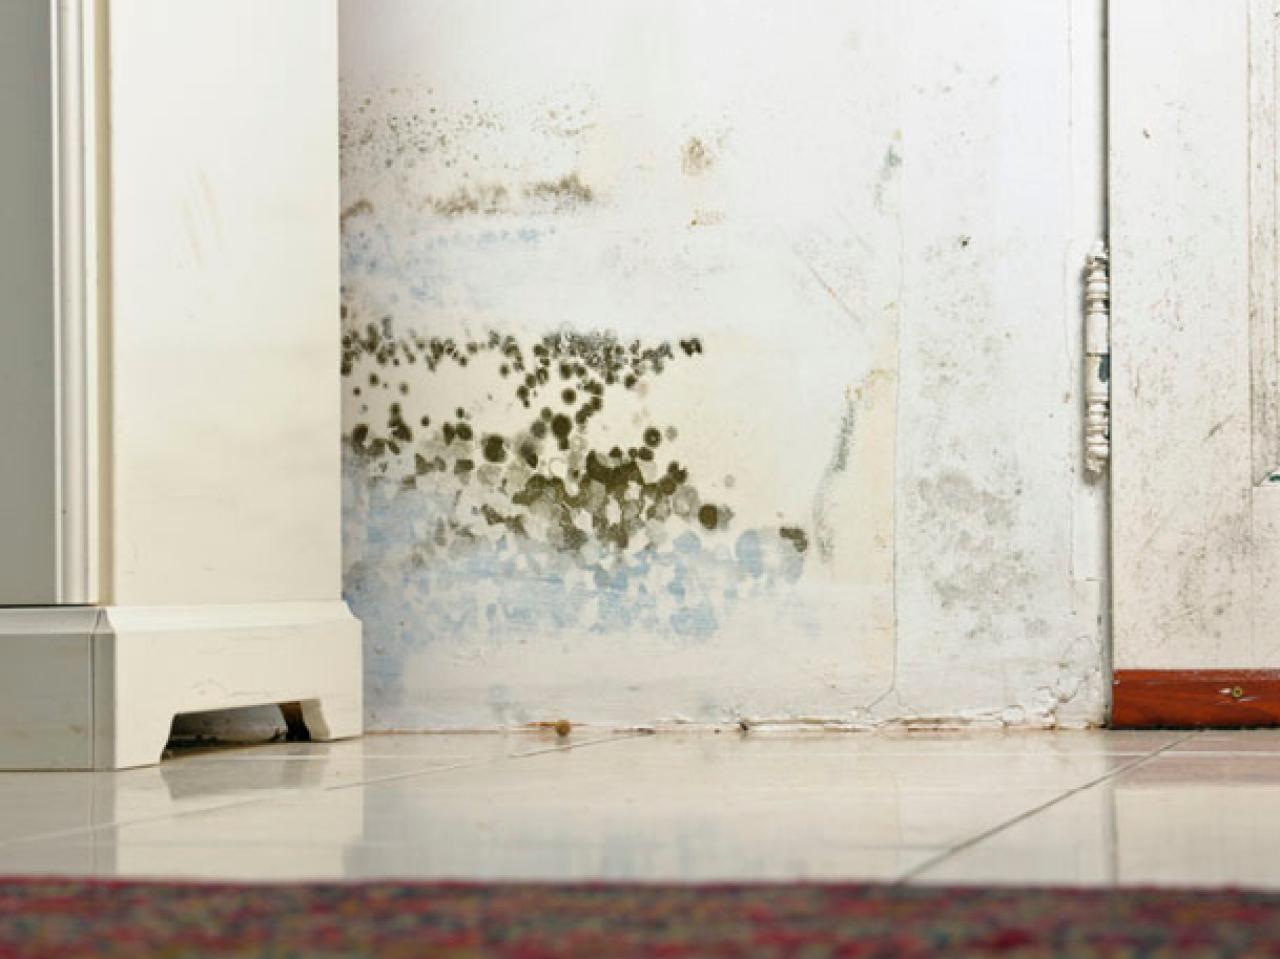 How to Remove Mold and Mildew on Your Walls